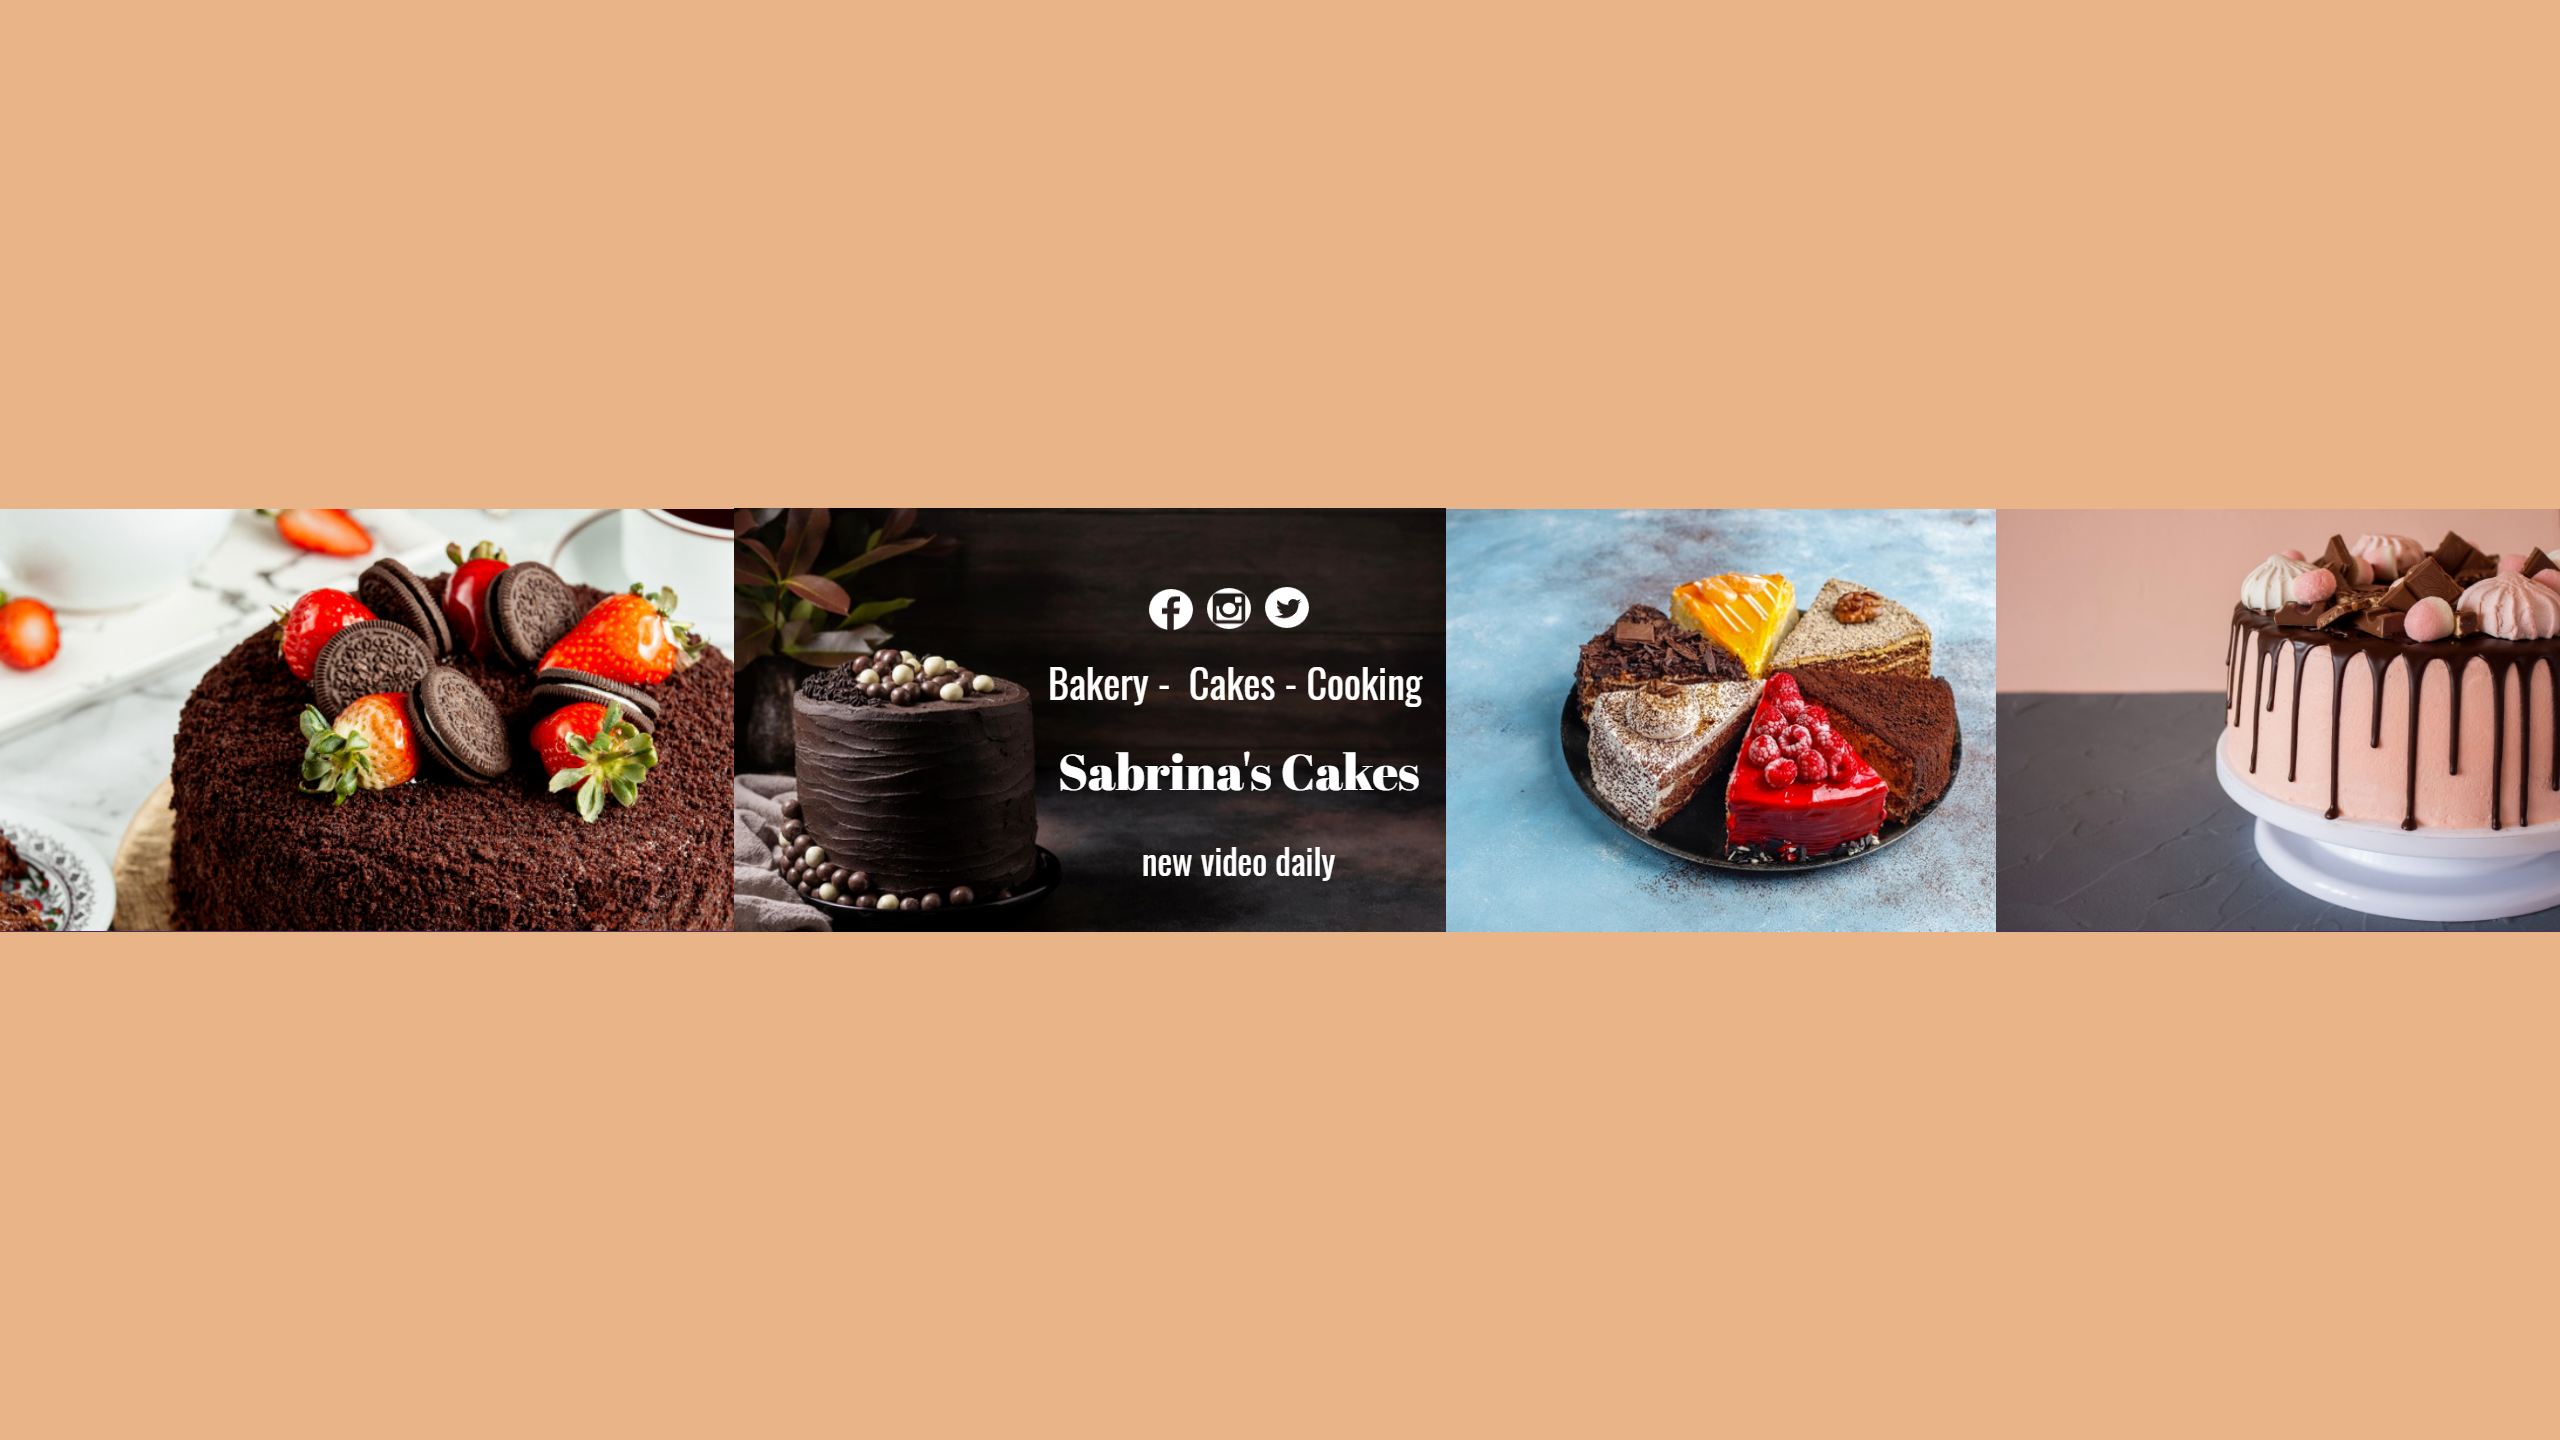 Youtube Bakery Cooking Cake Channel  Design  Template